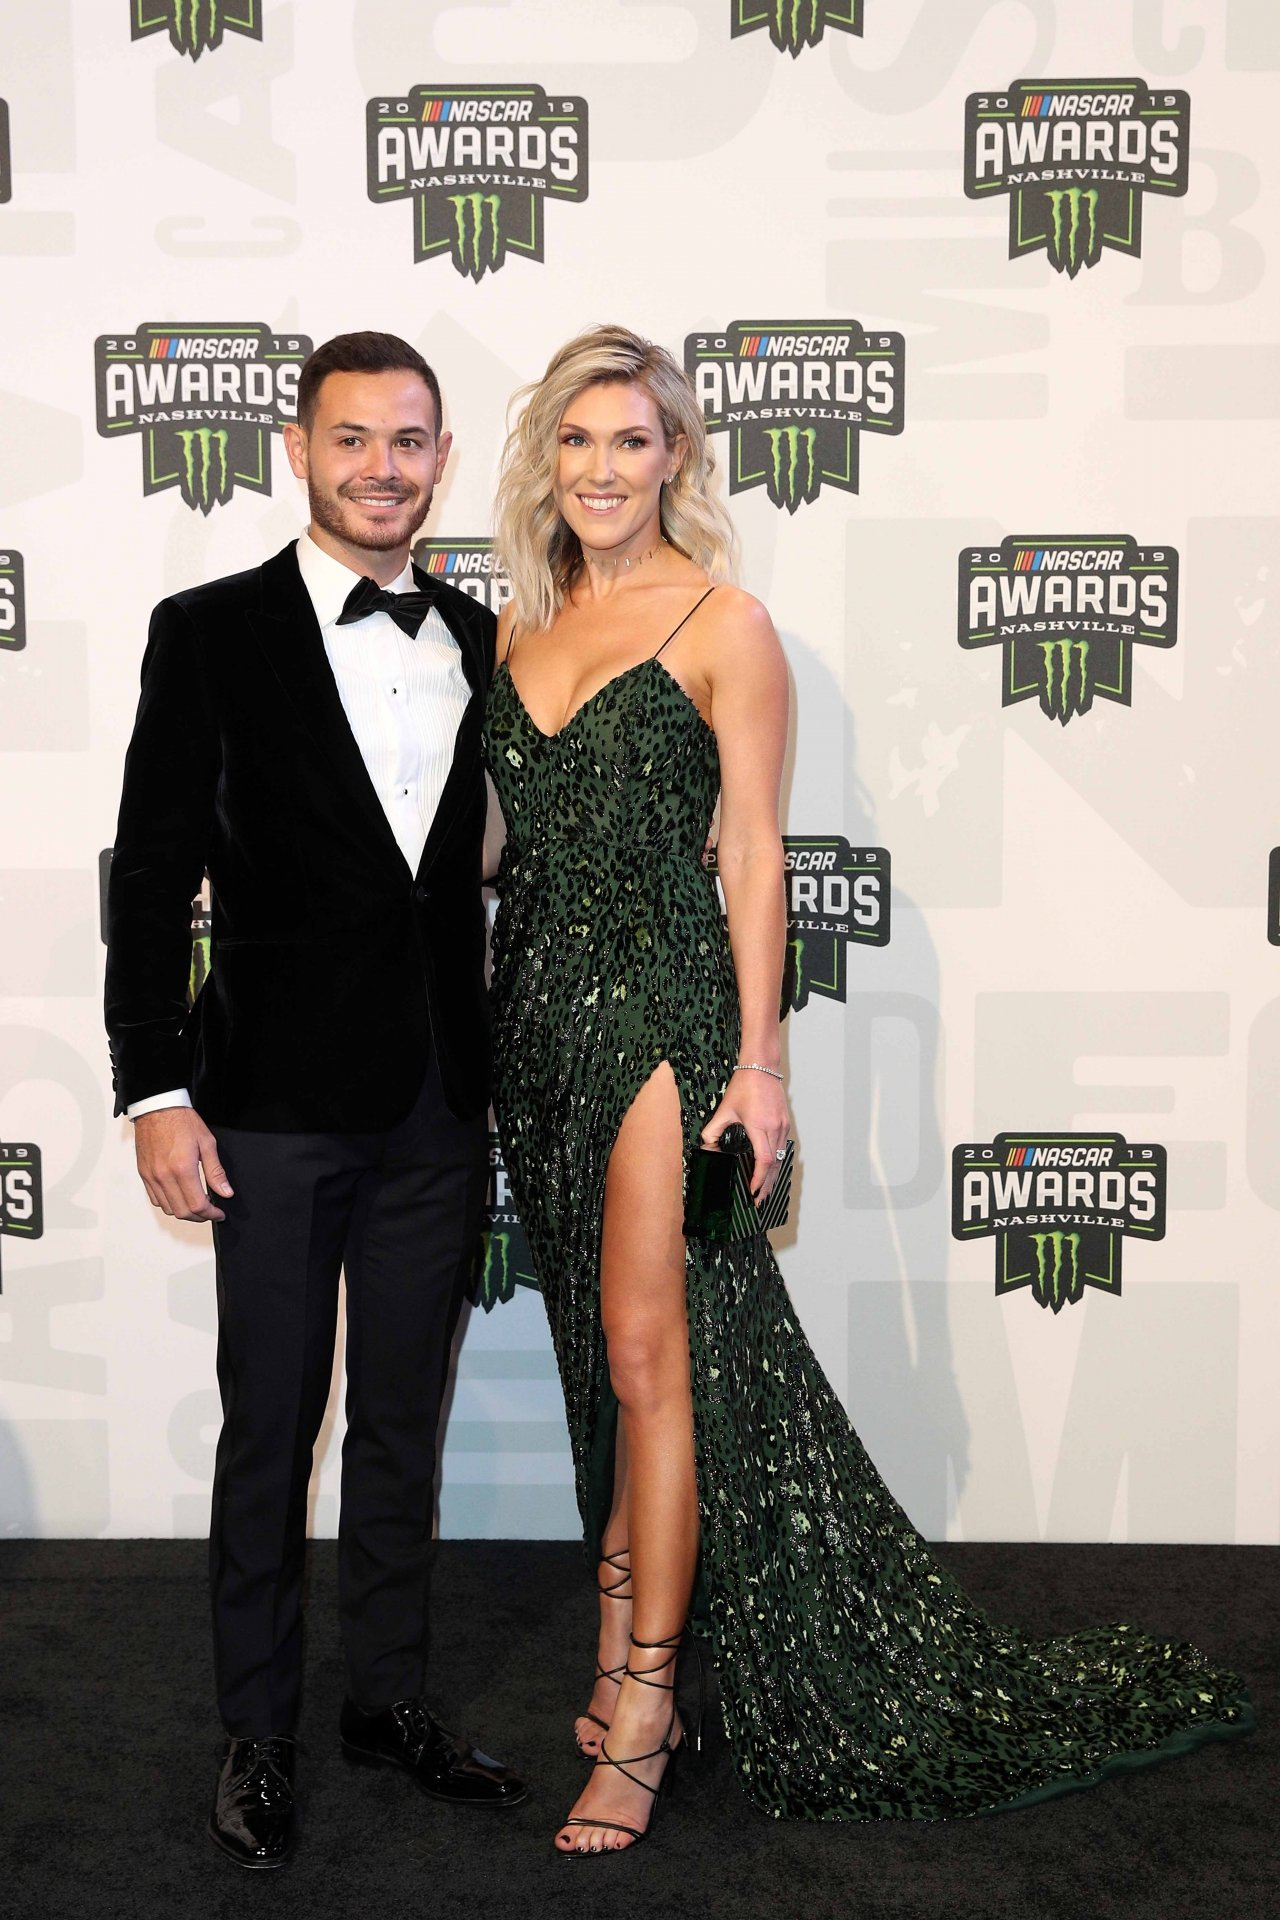 Kyle Larson and Katelyn Larson - NASCAR Awards